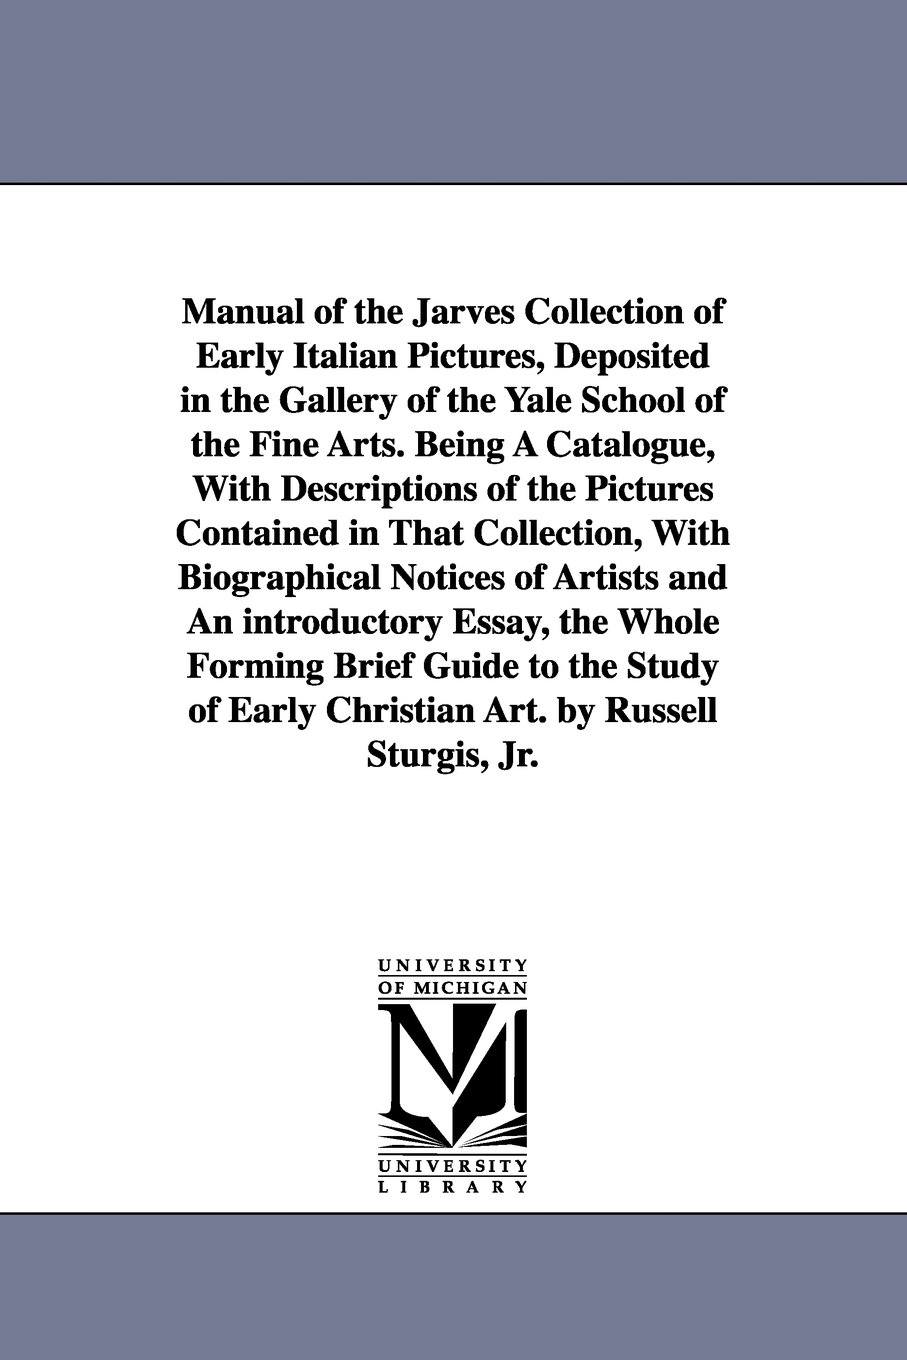 Manual of the Jarves collection of early Italian pictures, deposited in the gallery of the Yale school of the fine arts. By Russell Sturgis, Jr. pdf